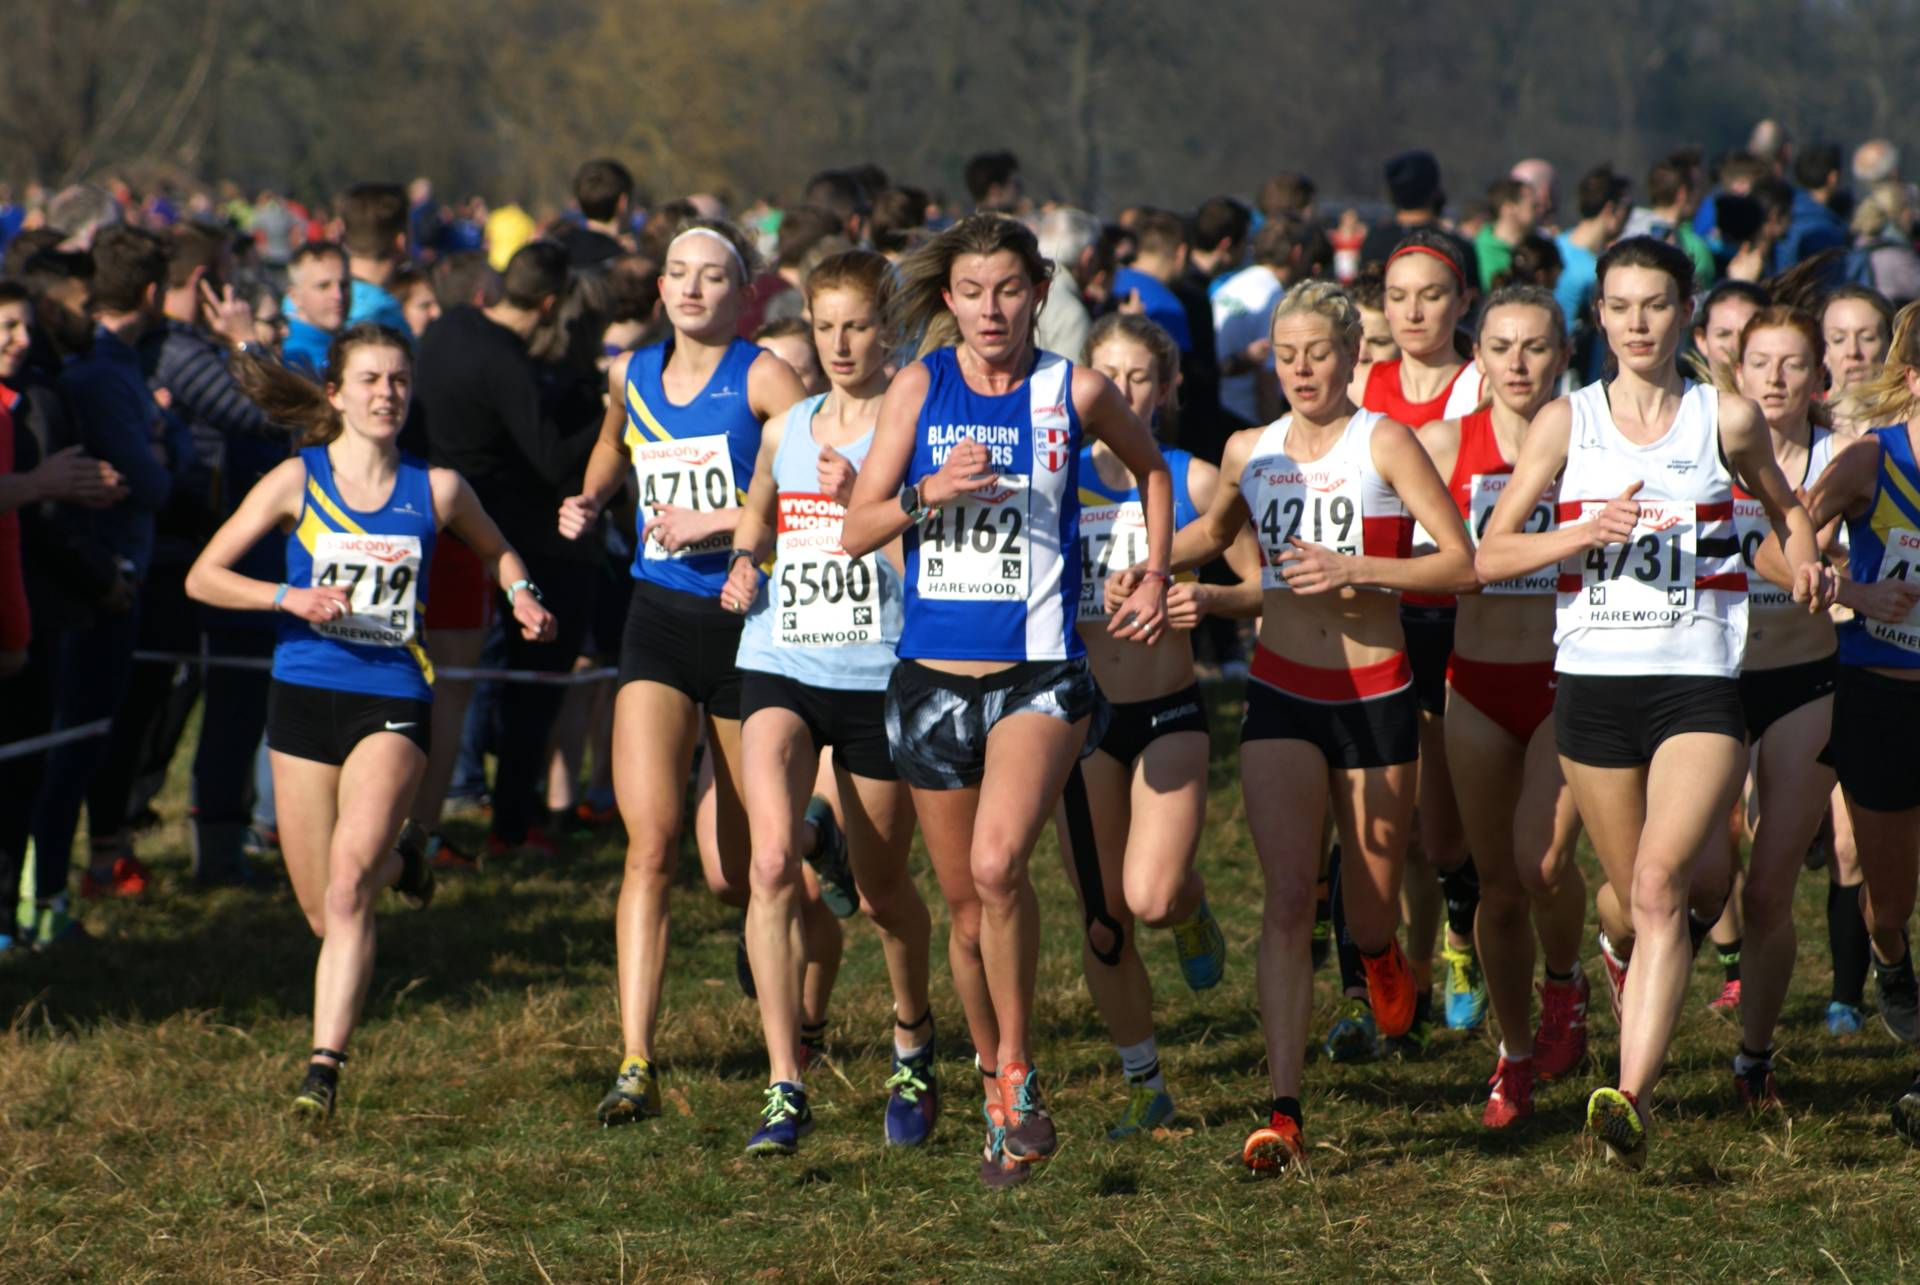 Jess Wins Bronze at National XC Championships – Ben places 4th in National Indoor Championships